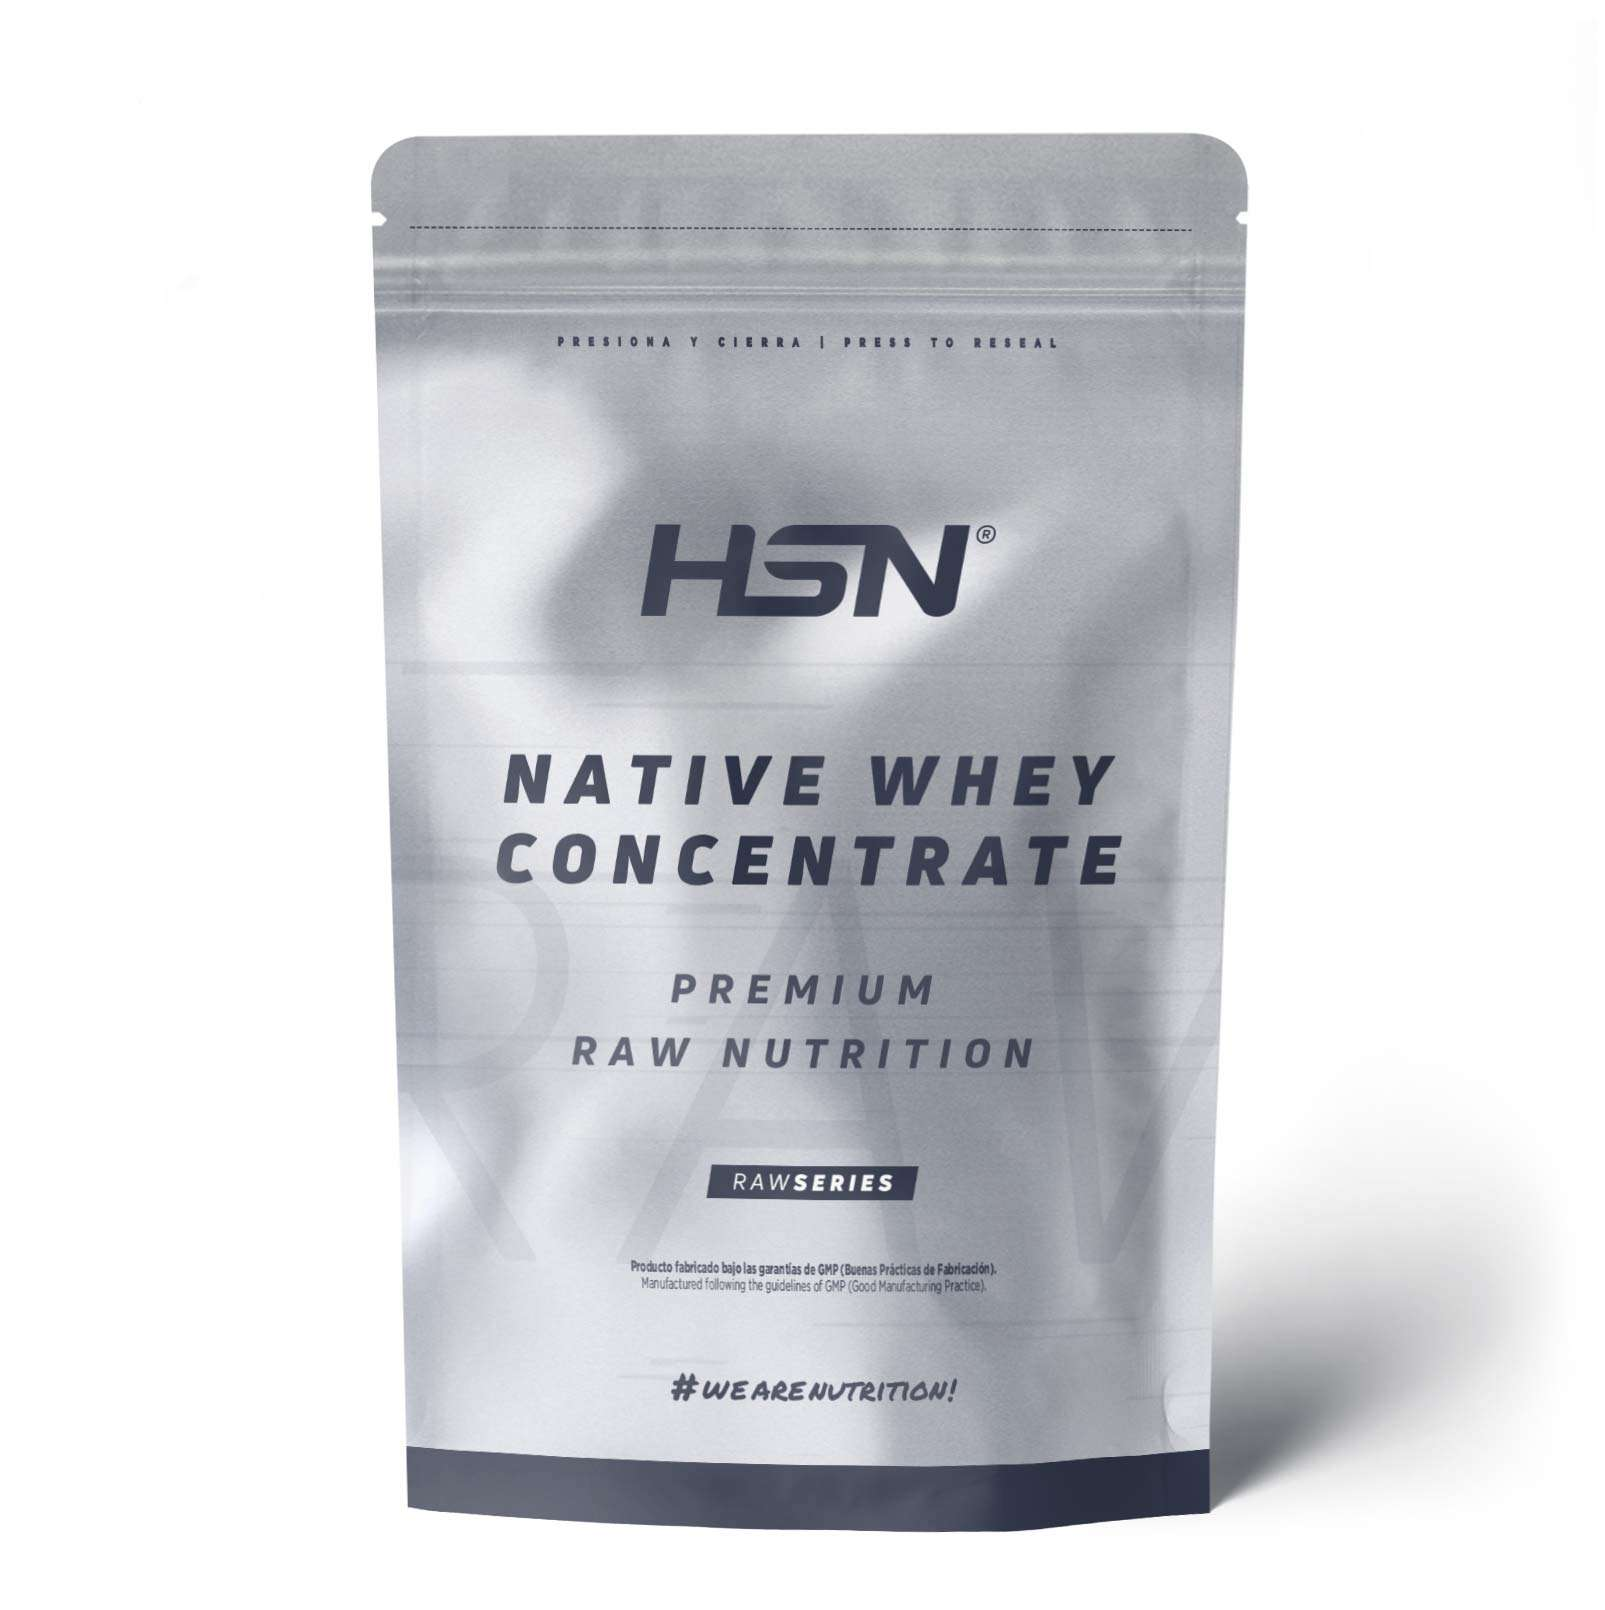 NATIVE WHEY CONCENTRATE